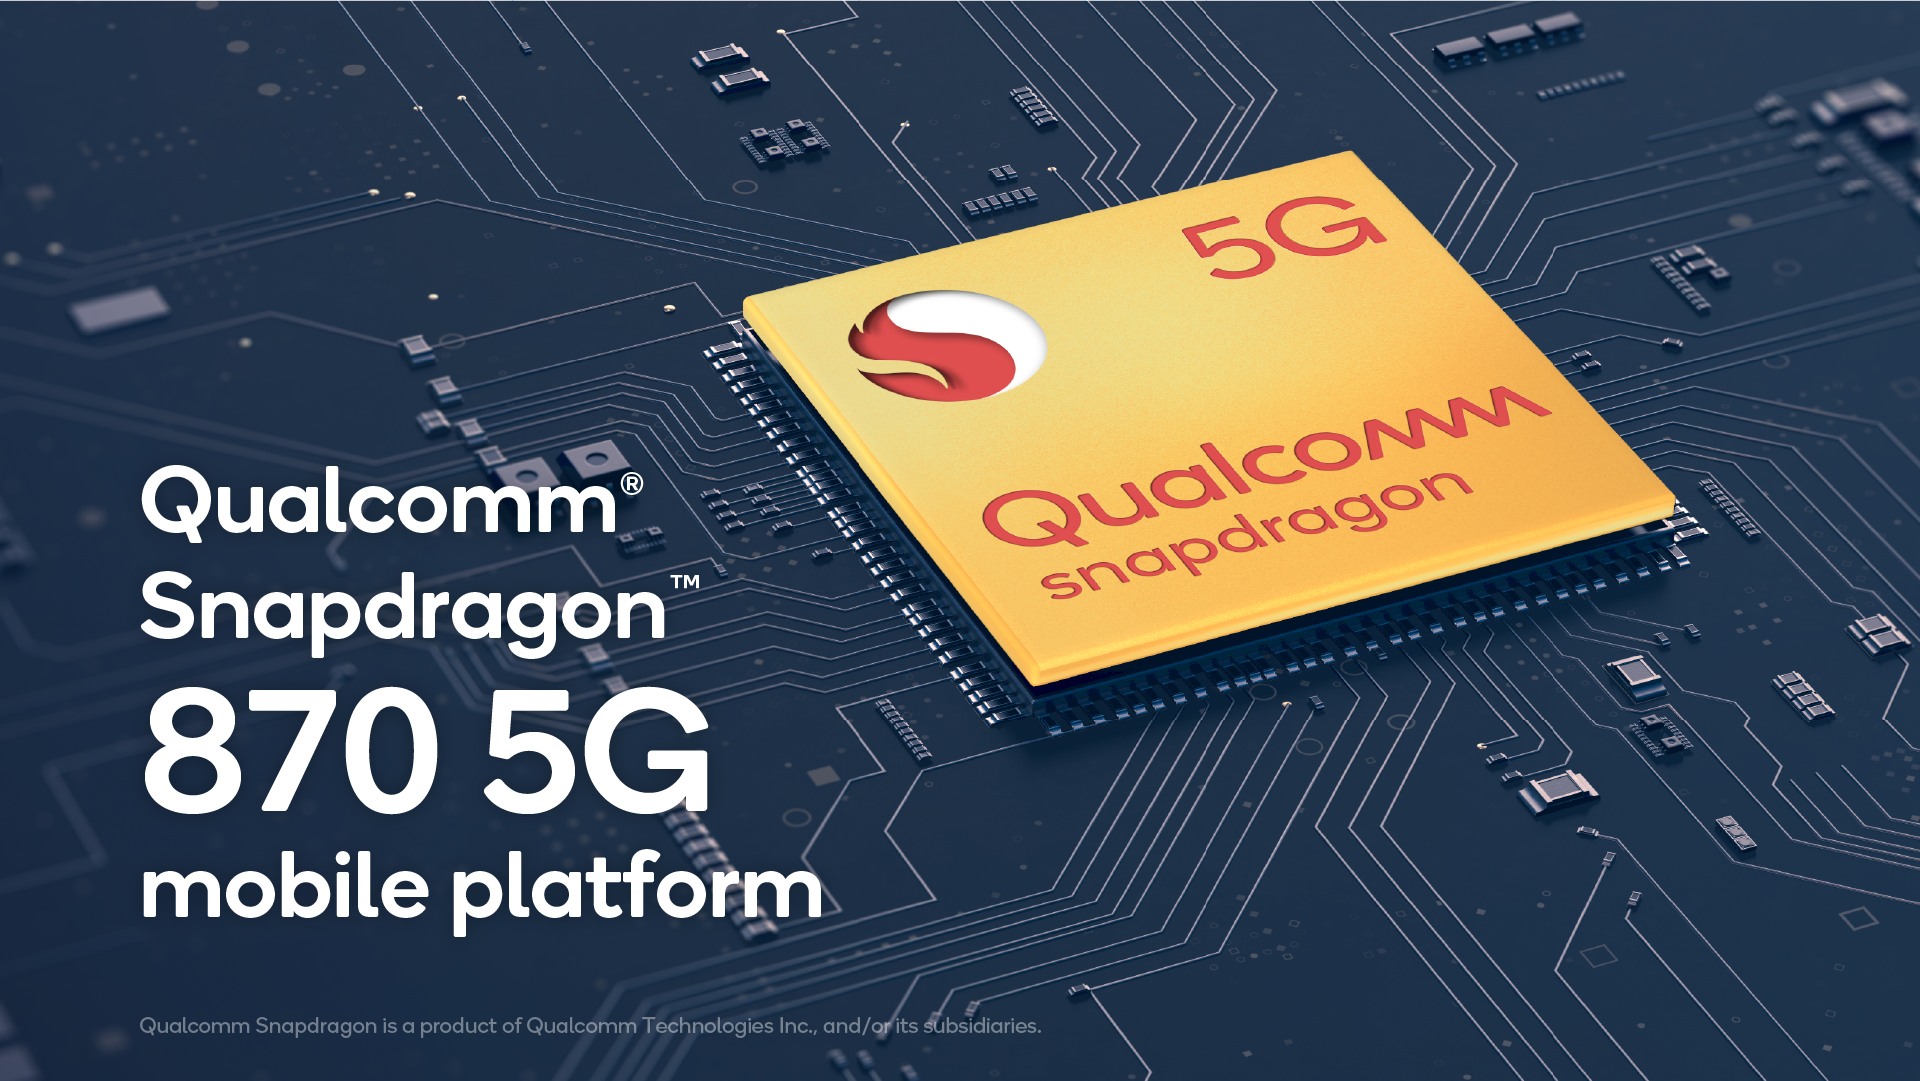 New Snapdragon 870 5G For Affordable Smartphones